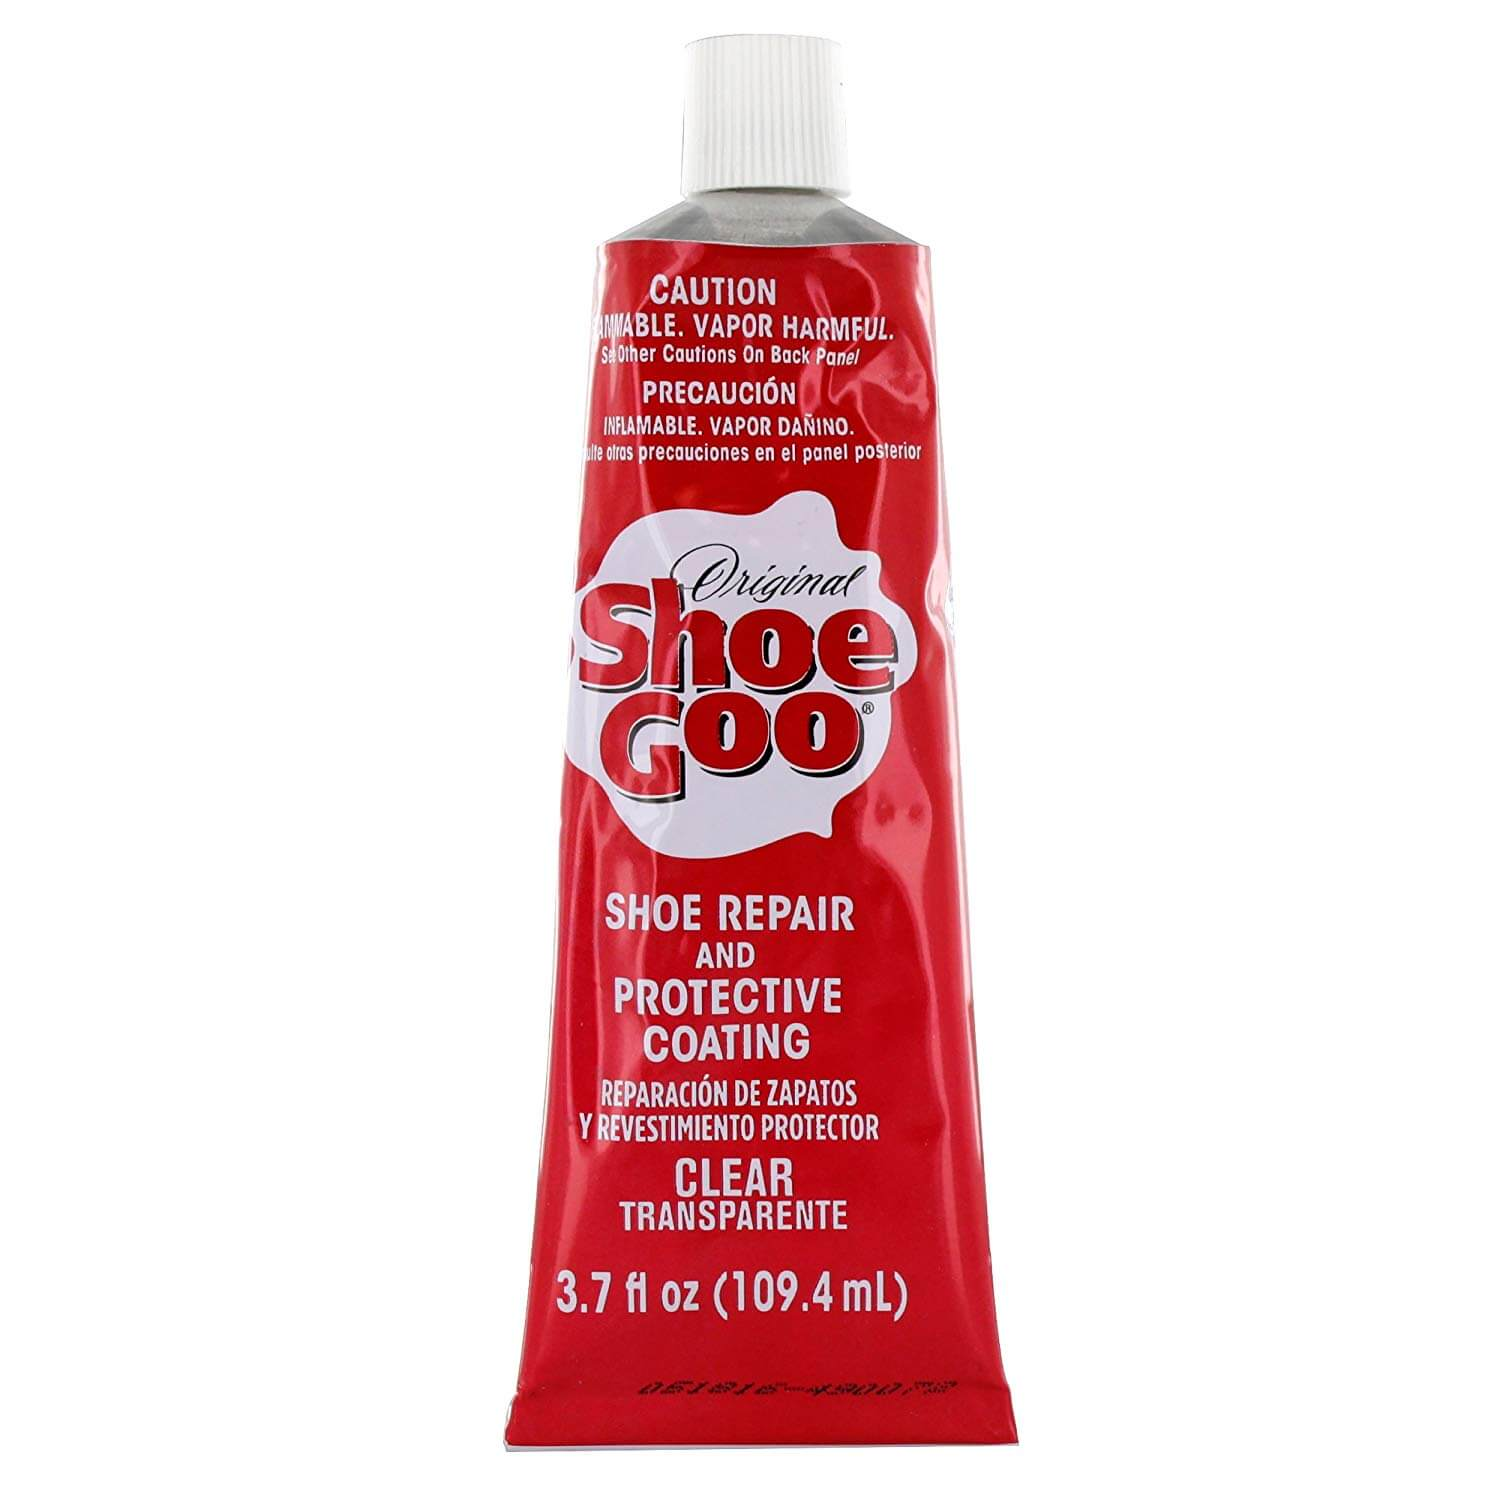 Shoe Goo Repair Adhesive for Fixing Worn Shoes Boots